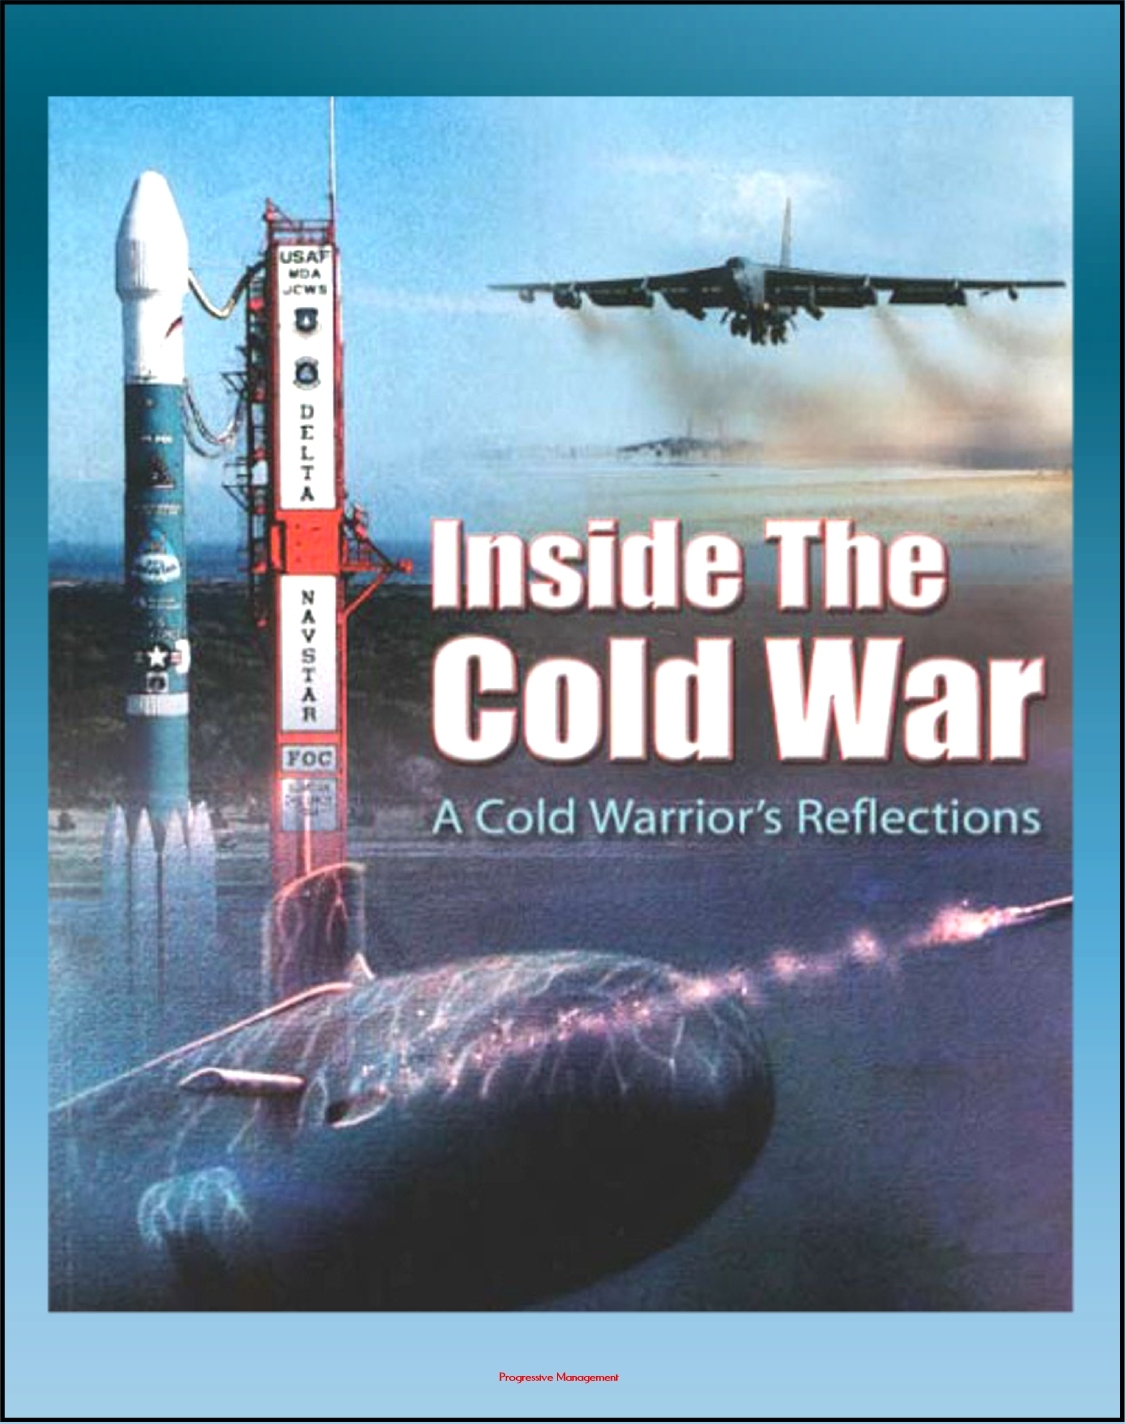 Inside the Cold War: A Cold Warrior's Reflections - Bombers, Tankers, Reconnaissance, ICBMs, Submarines, SAC Alert Forces, Russian Cold Warriors, Curtis LeMay, Hyman Rickover By: Progressive Management